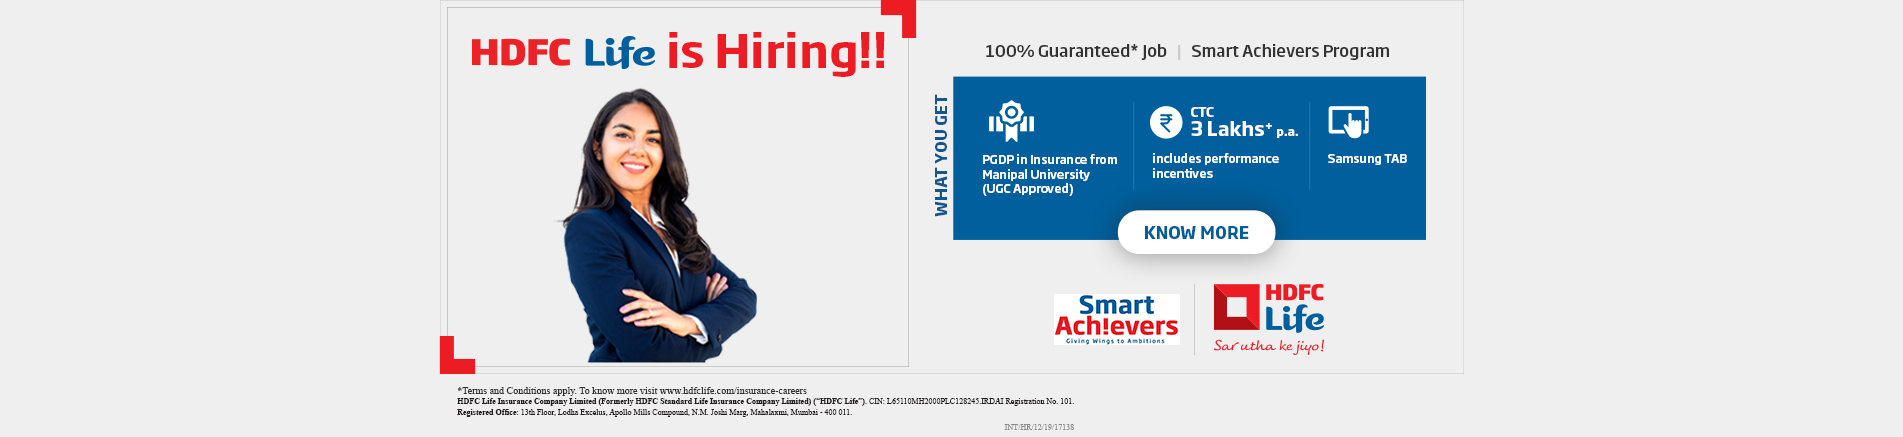 HDFC Life is Hiring